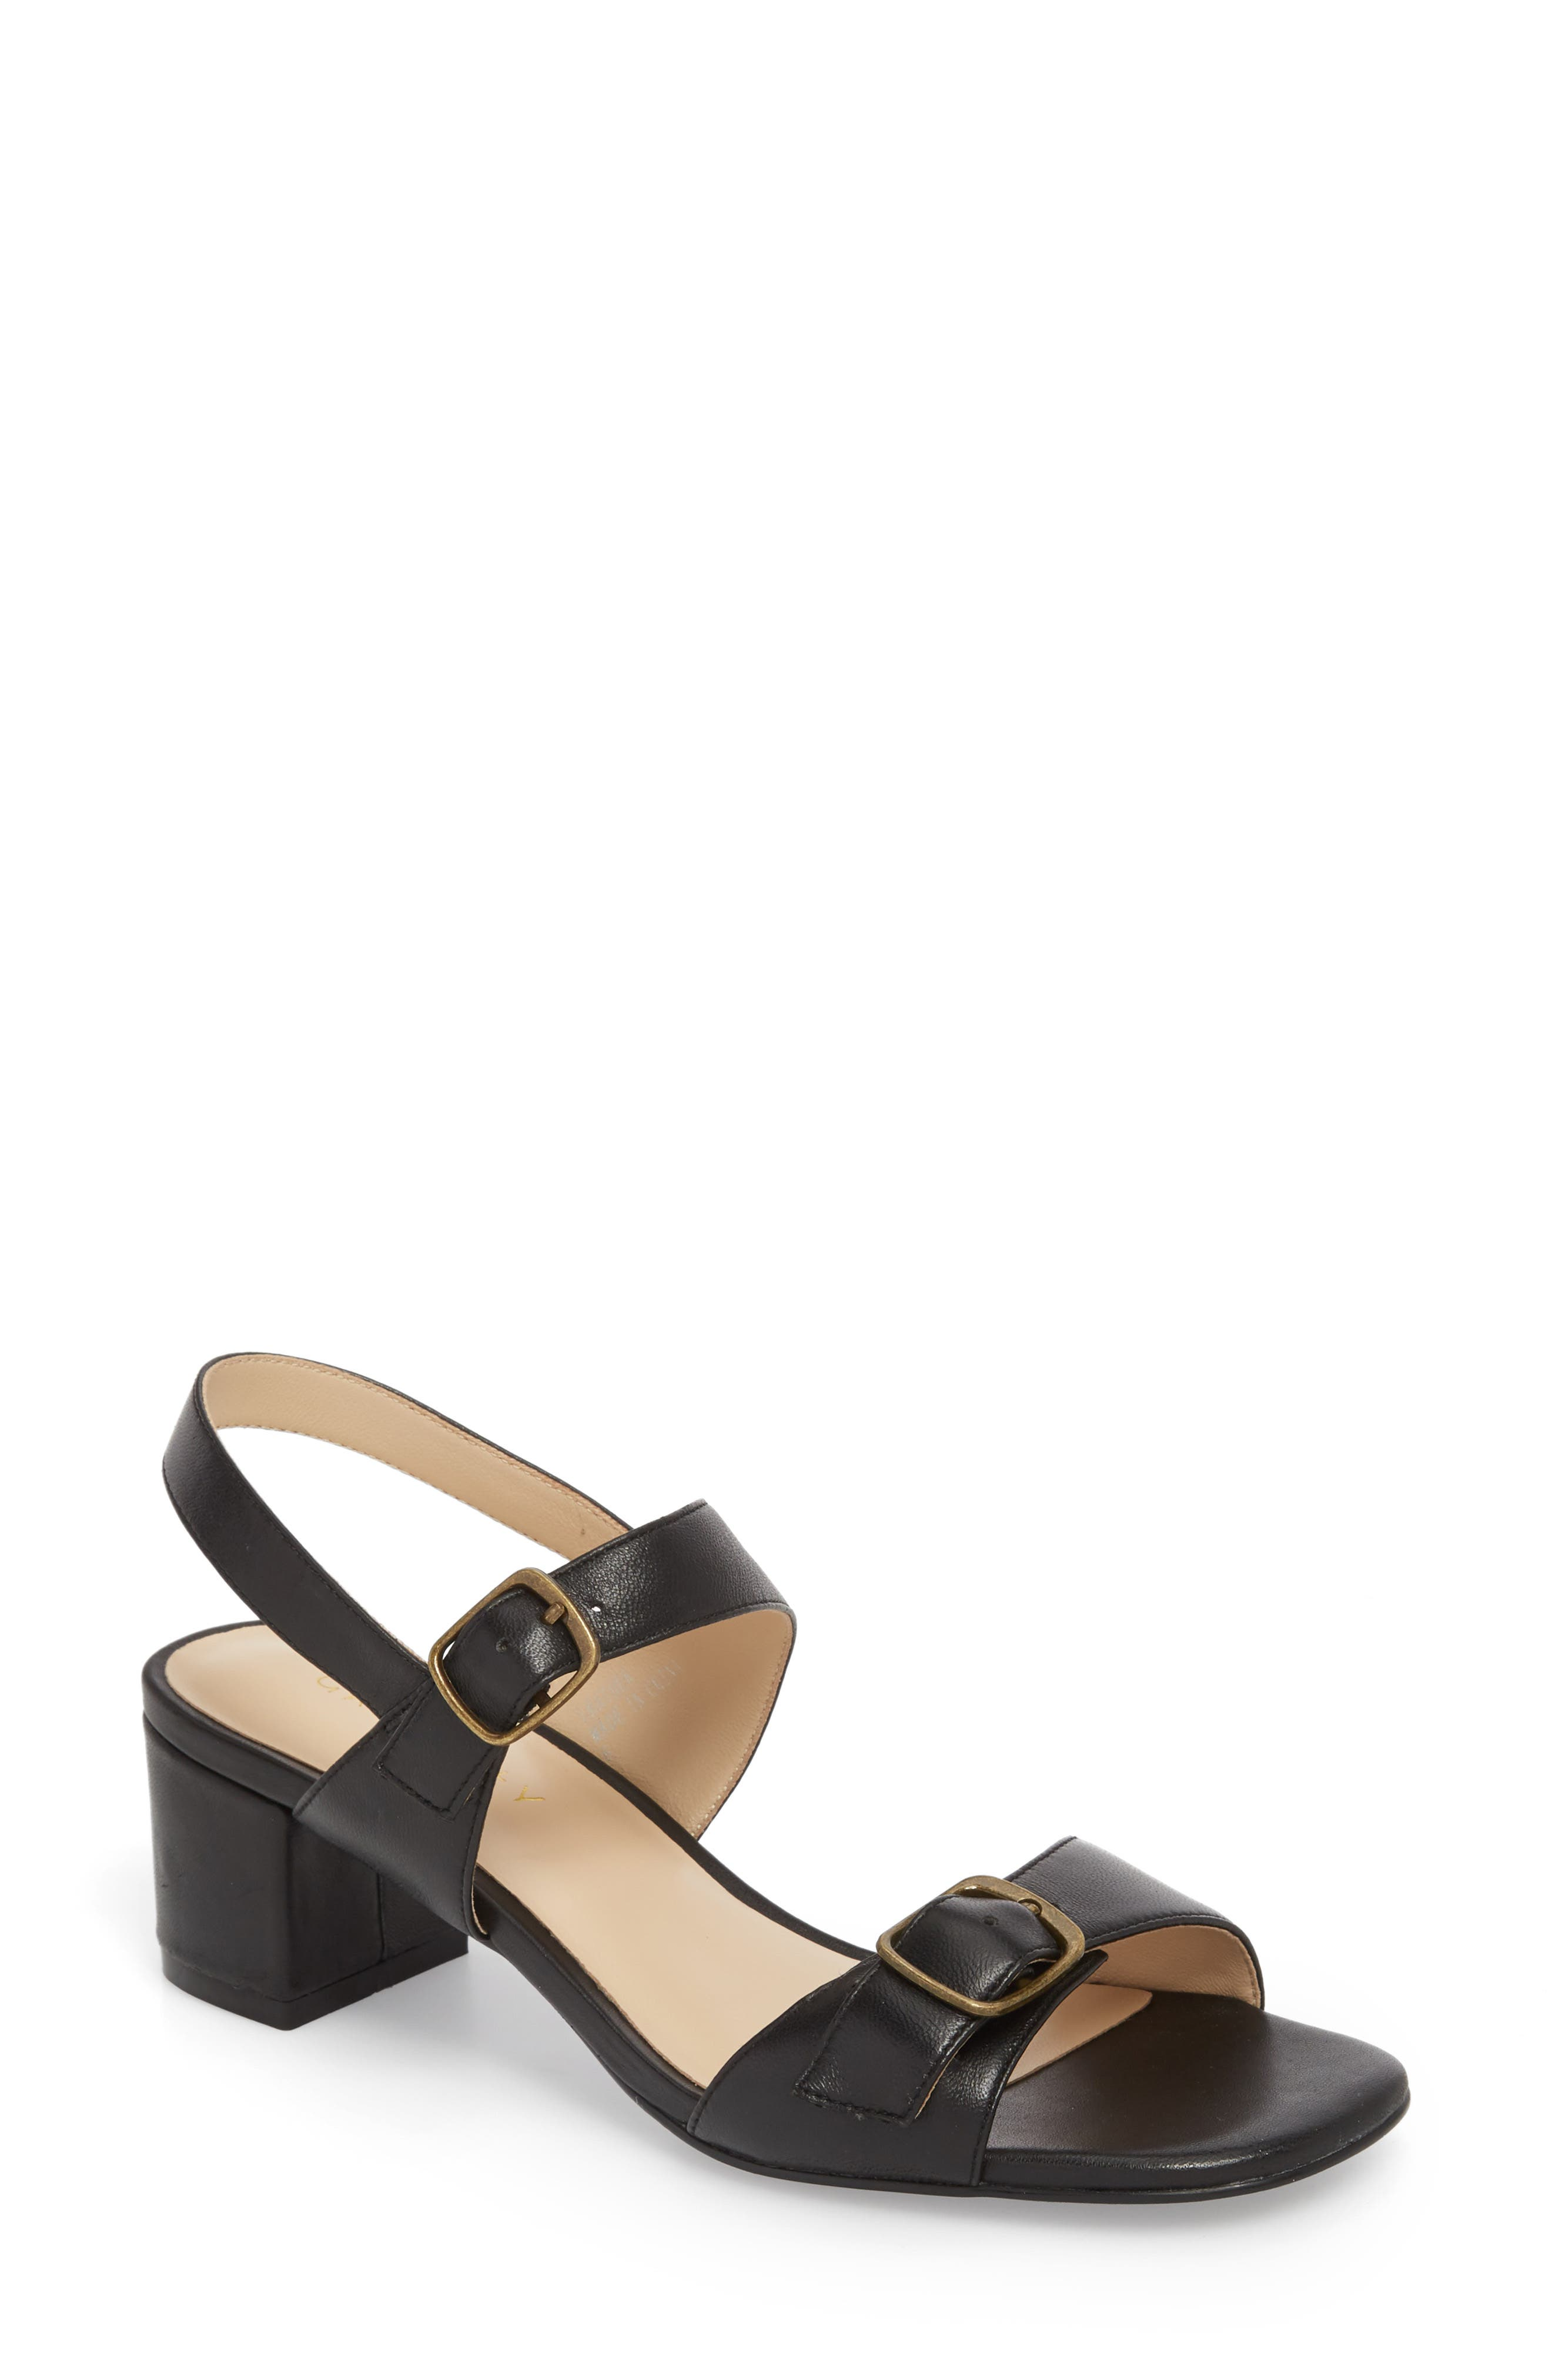 Caroline Sandal,                             Main thumbnail 1, color,                             Black